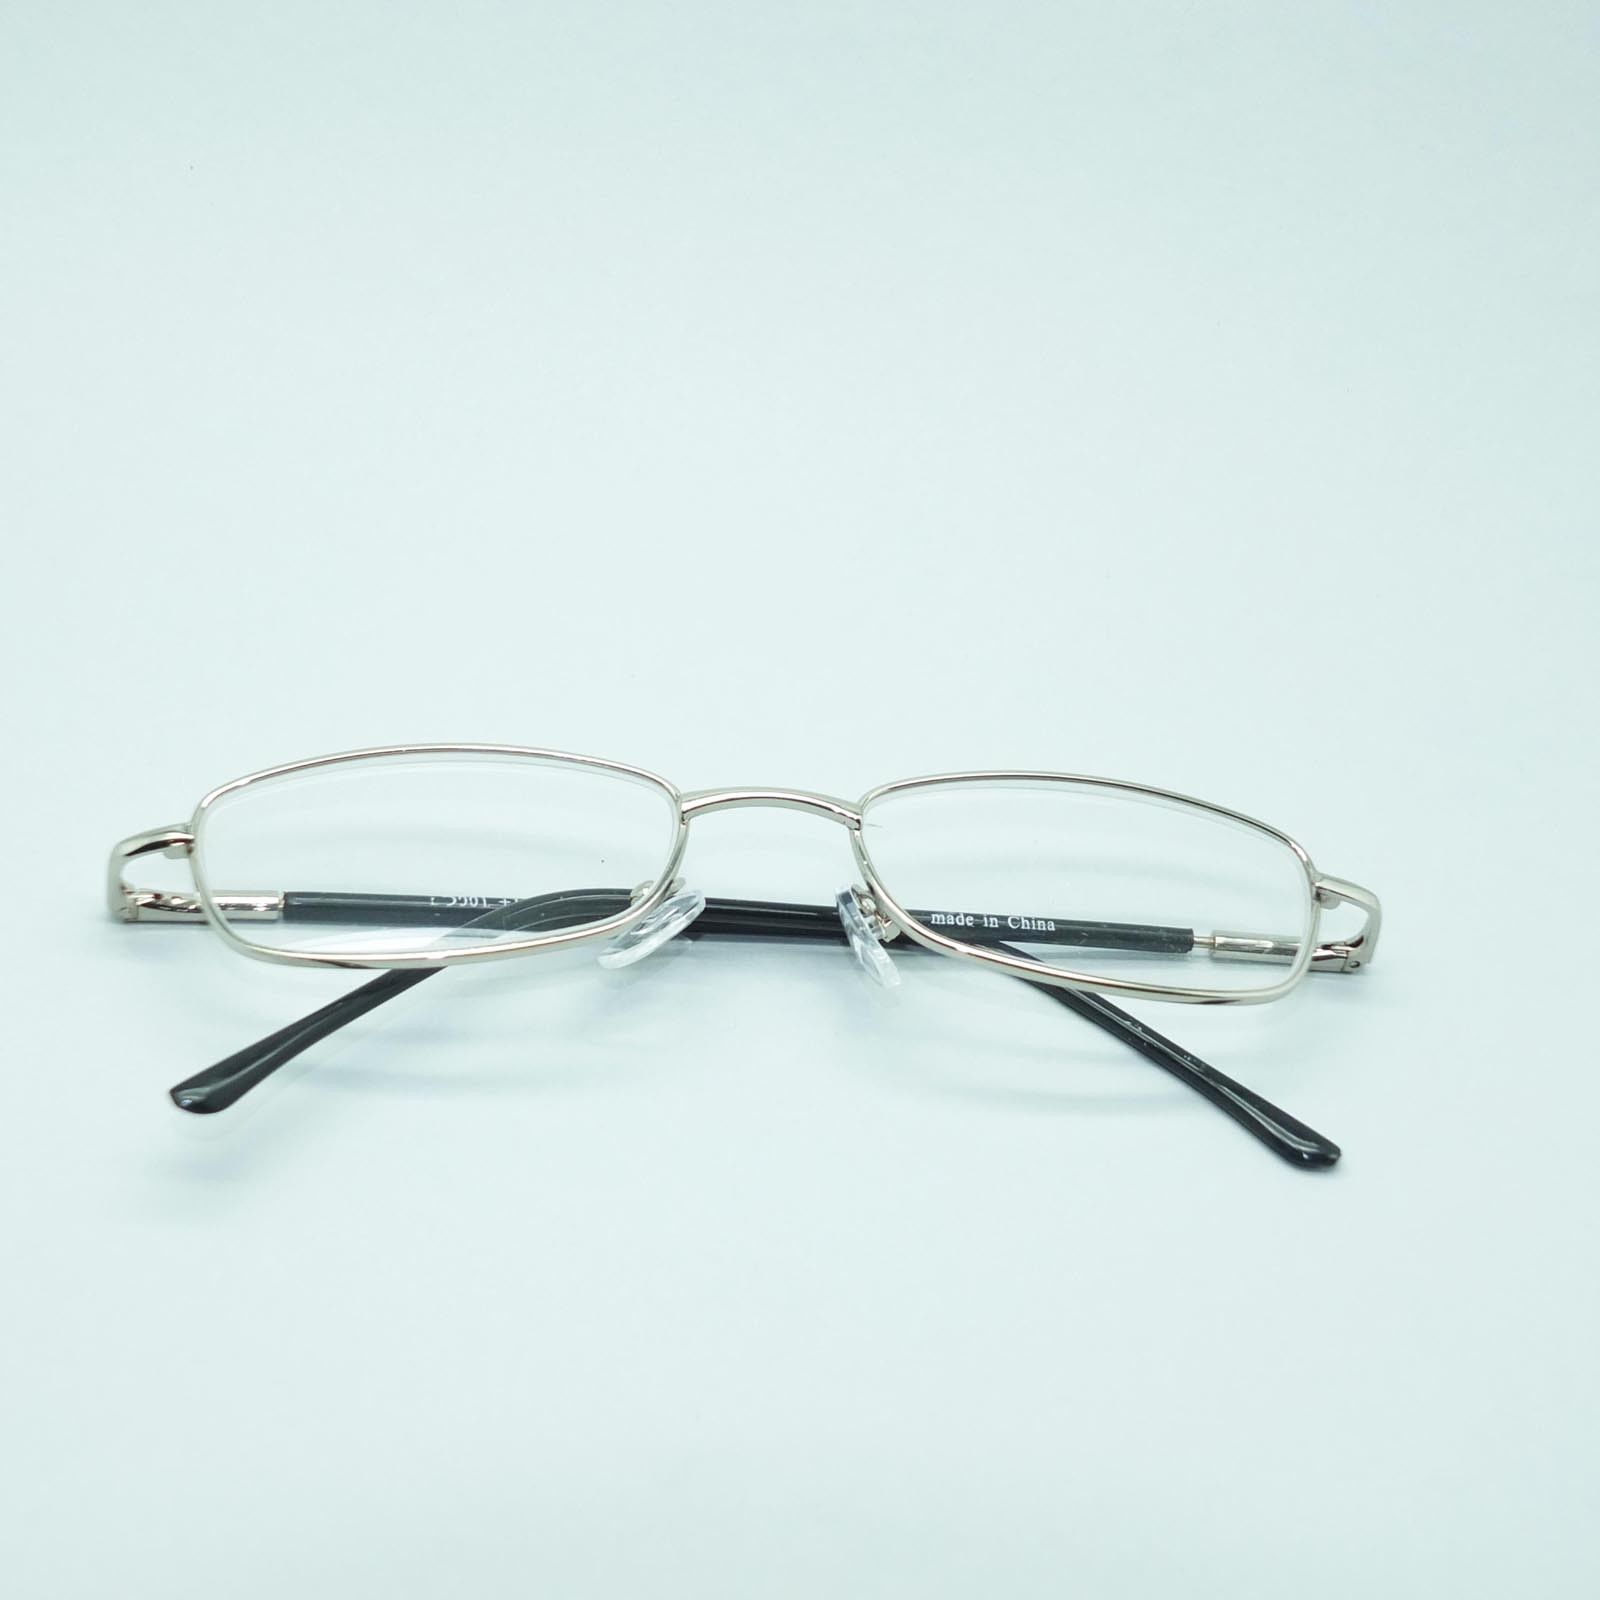 Reading Glasses Low Profile Silver Frame Lightweight Spring Temples +3.00 Lens image 4